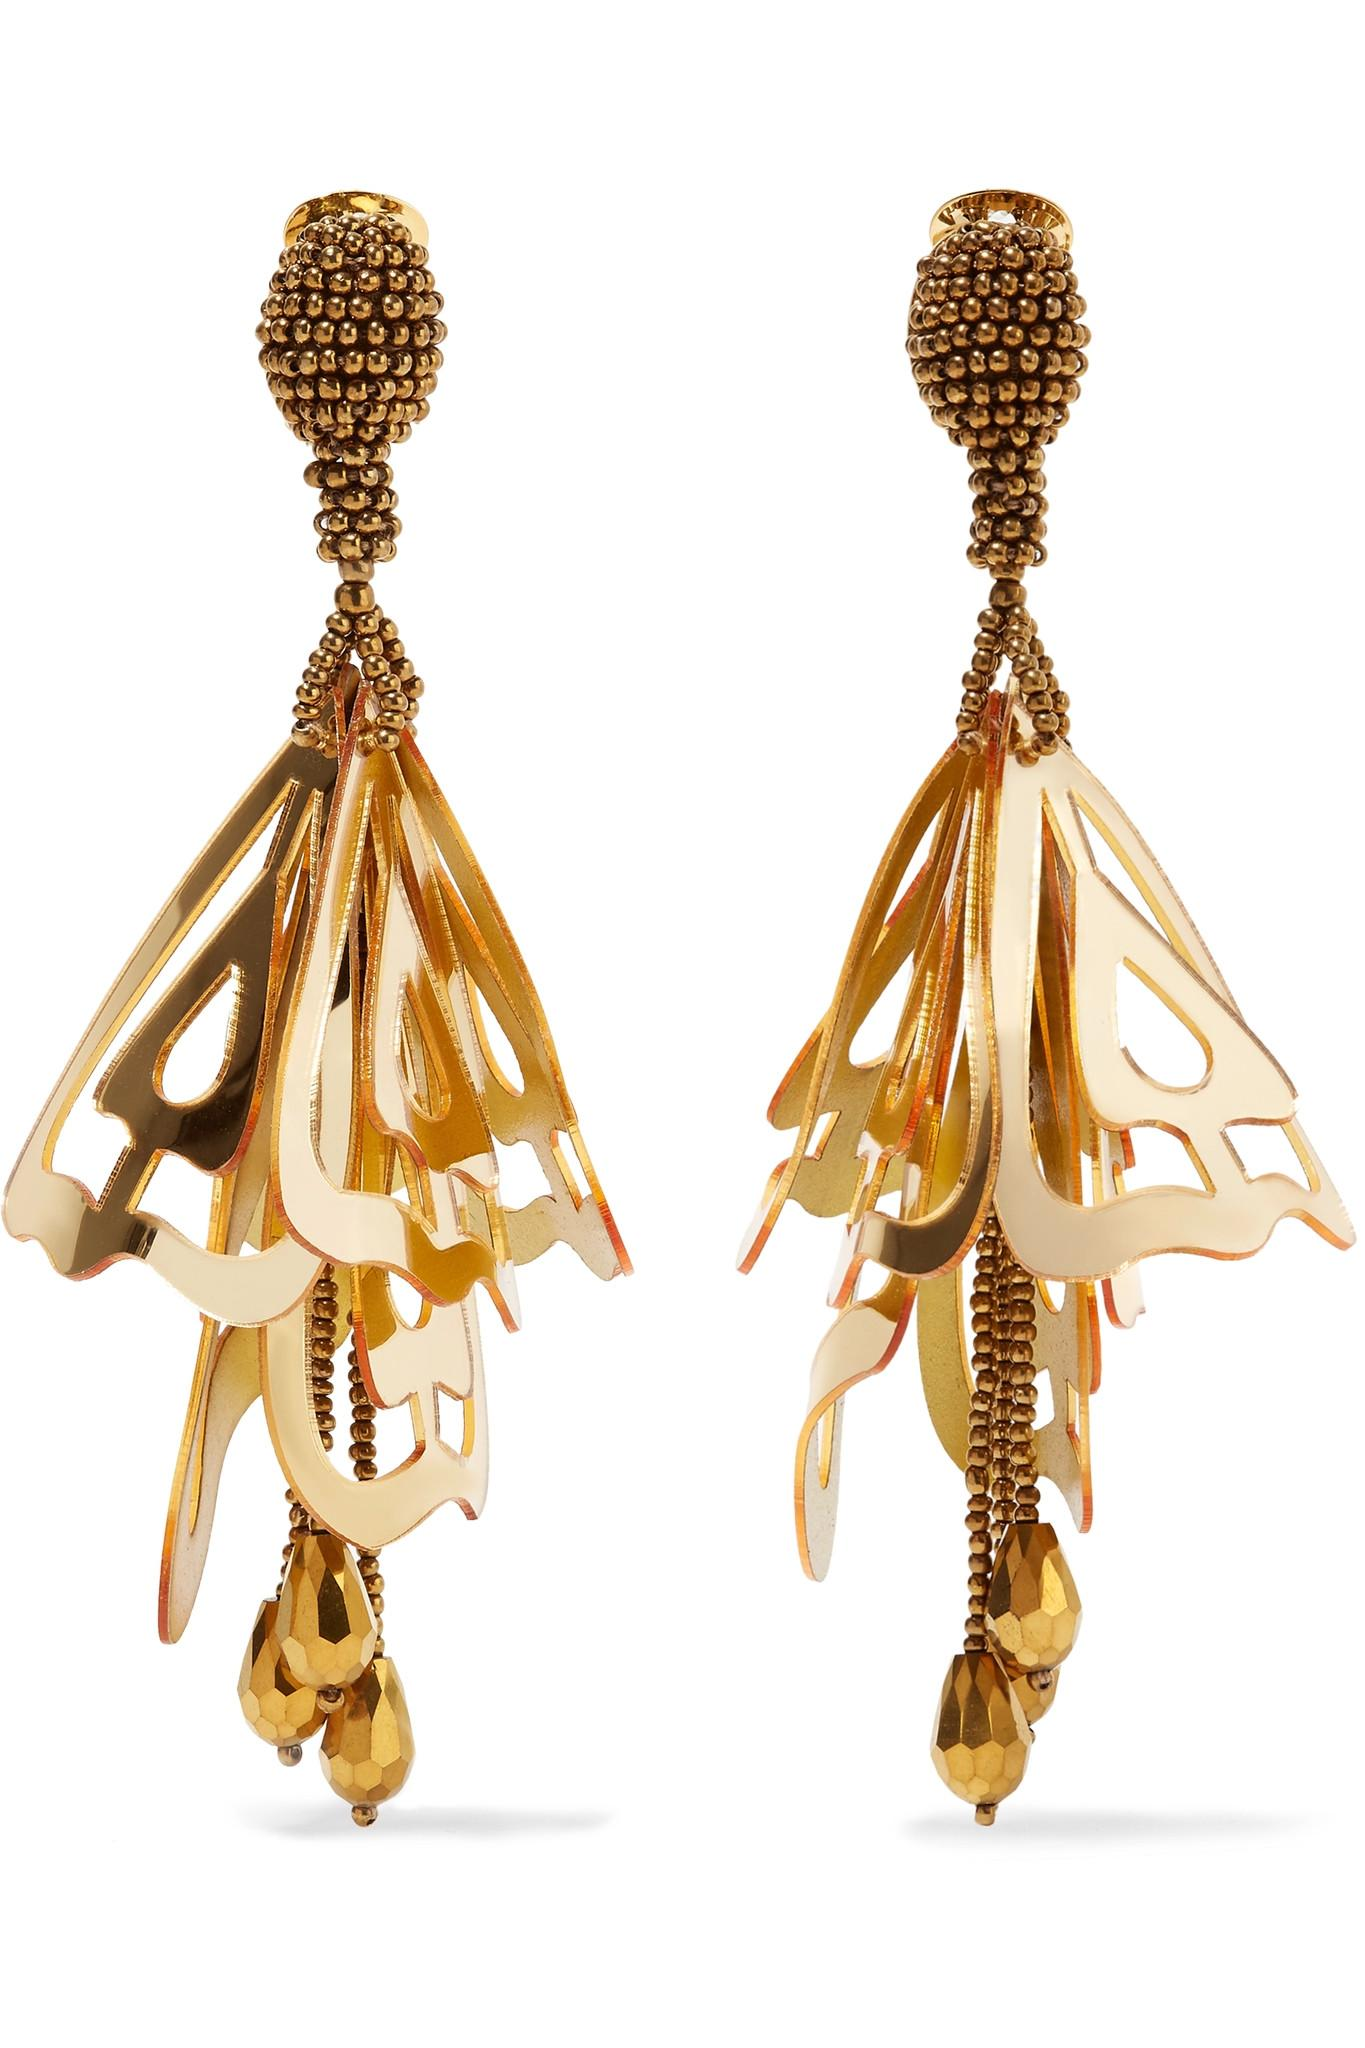 Oscar De La Renta Large Impatiens Gold Tone Resin Clip Earrings Gold as well Love Now Resortwear moreover Fall Winter 2016 2017 Accessory Trends besides Thing likewise Thing. on oscar de la renta beaded earrings